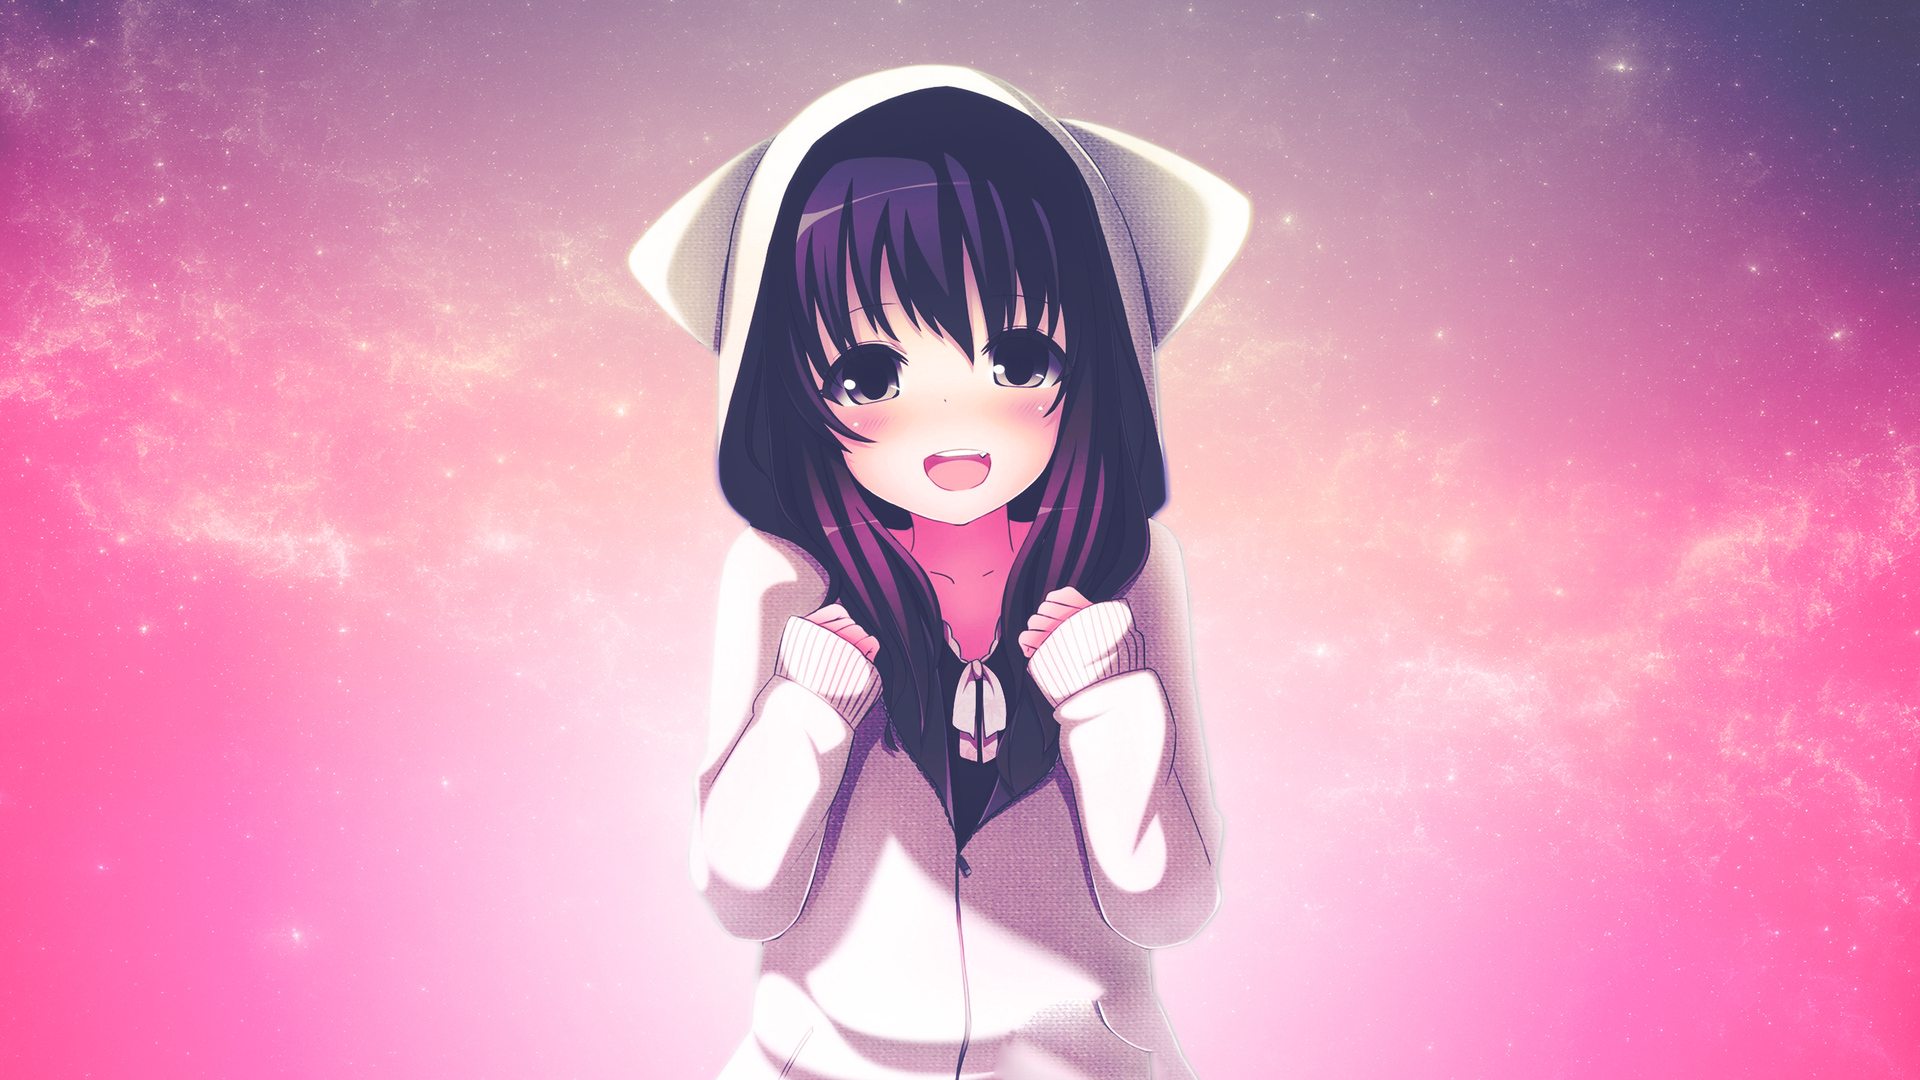 1920x1080 size 2 4 mb collection game tags happy anime girl game tweet 1920x1080